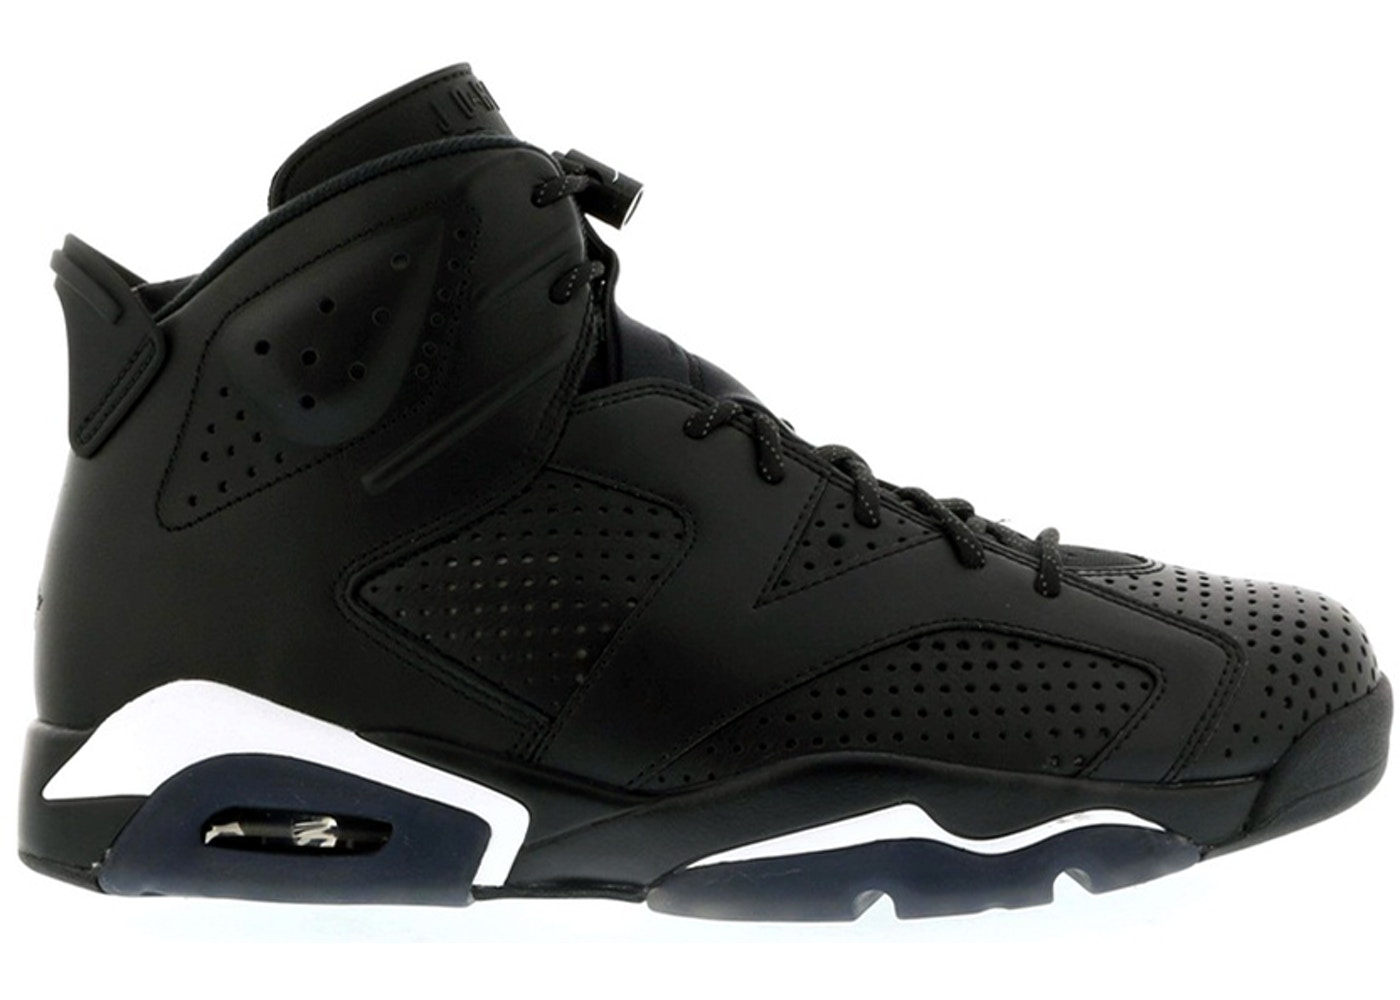 new product dc0b2 83c84 Jordan 6 Retro Black Cat - 384664-020